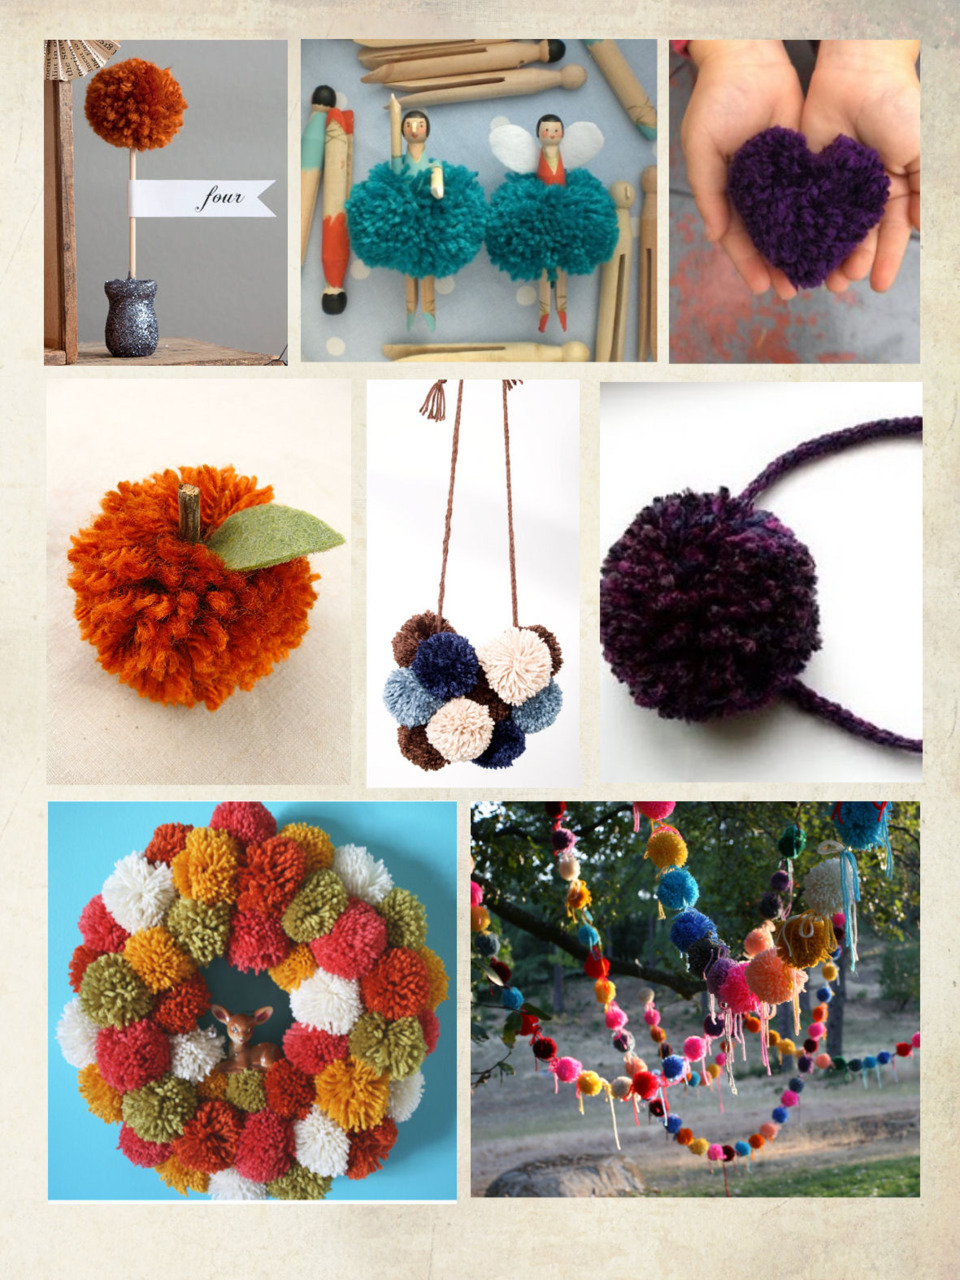 Pom Pom Tutorials Ok, I'm officially pom pom obsessed. I'm the kind of person who can't sit and watch tv. I watch tv + make soap, sew, cut pictures out of mags, eat, blog, or anything else crafty! And pompoms are sooo easy to make when watching tv! Especially tv I have to concentrate on like The Wire (yes, I'm so behind on watching this amazing tv show!) So what do I do with the bountiful supplies of pompoms I now have? Well apart from amusing my cat, here are some more: Top Row: Mini Pom Pom Topiary by Domestifluff; Pom Pom Tutu Peg Dolls by Pom Pom Emporium; Pom Pom Heart by Zakka Life Middle Row: Pom Pom Pumpkin by Glue Gun Crafts; Pom Pom Necklace & Scarf by Bleubird Vintage; Pom Pom Headband by Bugs & Fishes Bottom Row: Pom Pom Wreath by Bleubird Vintage; Pom Pom Pennant by HonestlyWTF